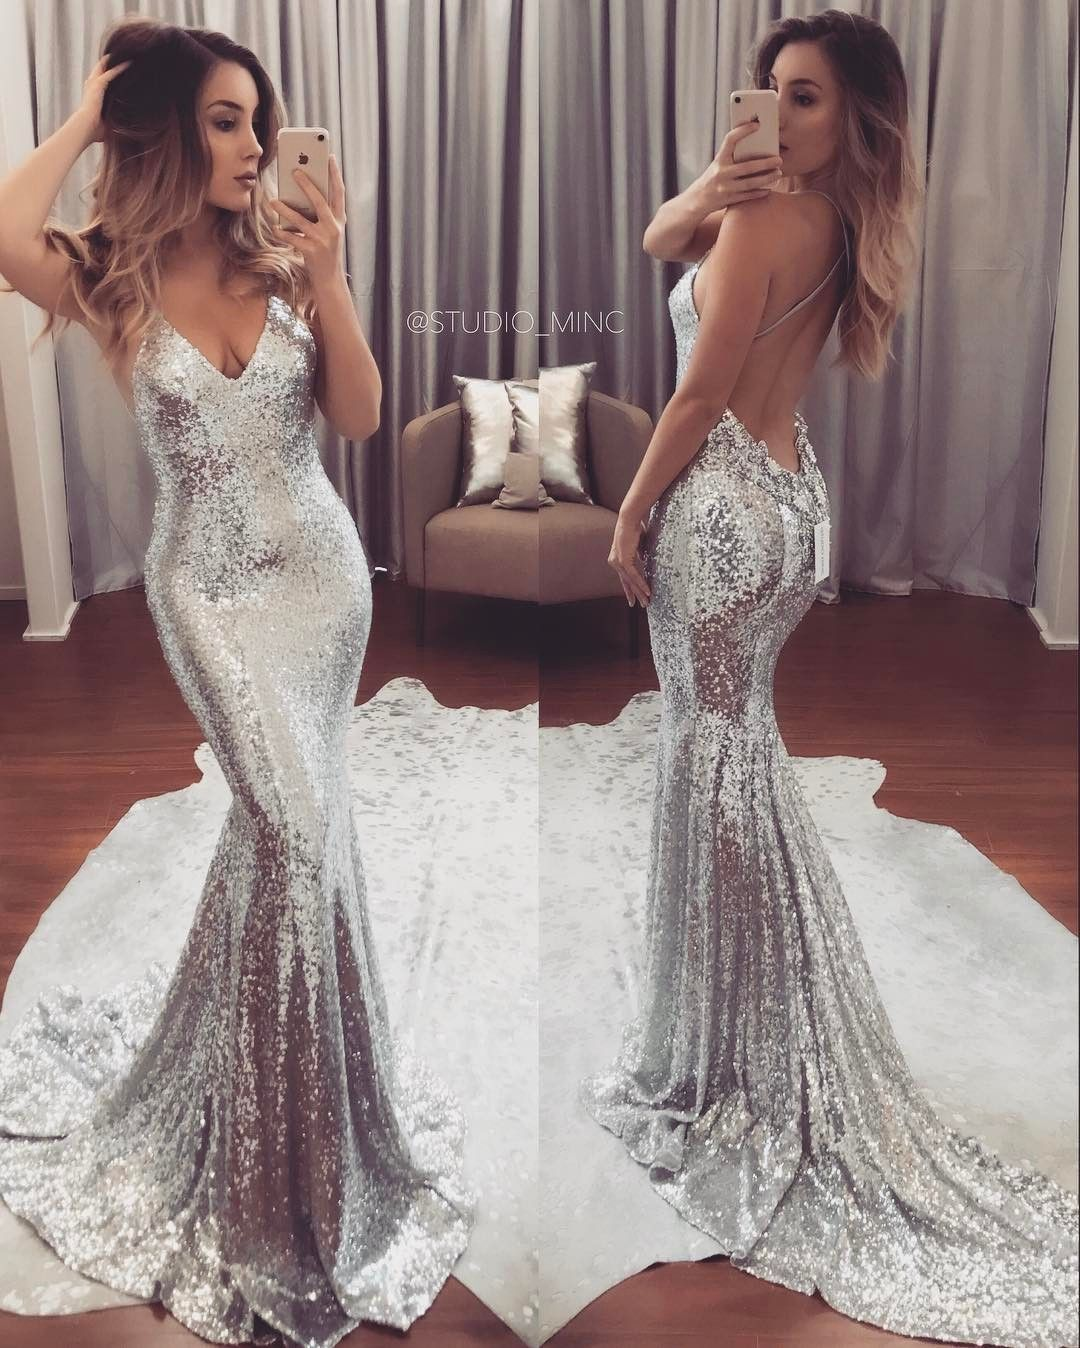 aeb12f27517a Silver Angel backless formal/ prom dress by STUDIO MINC | Dresses ...